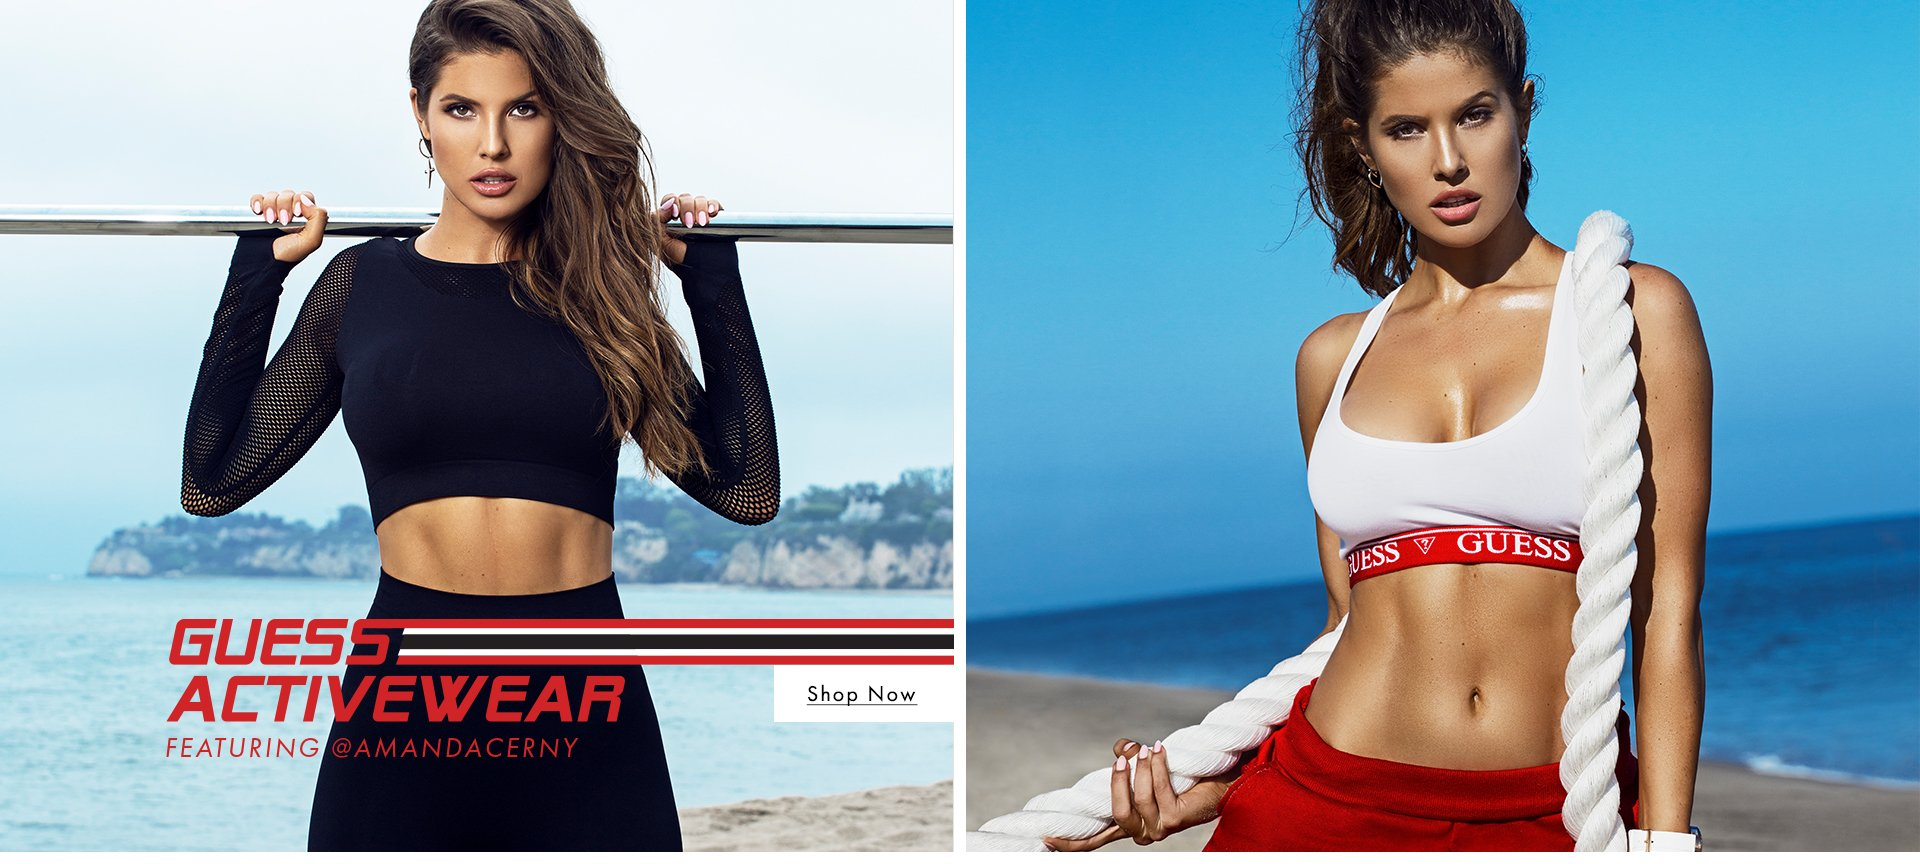 GUESS Activewear featuring AMANDA CERNY